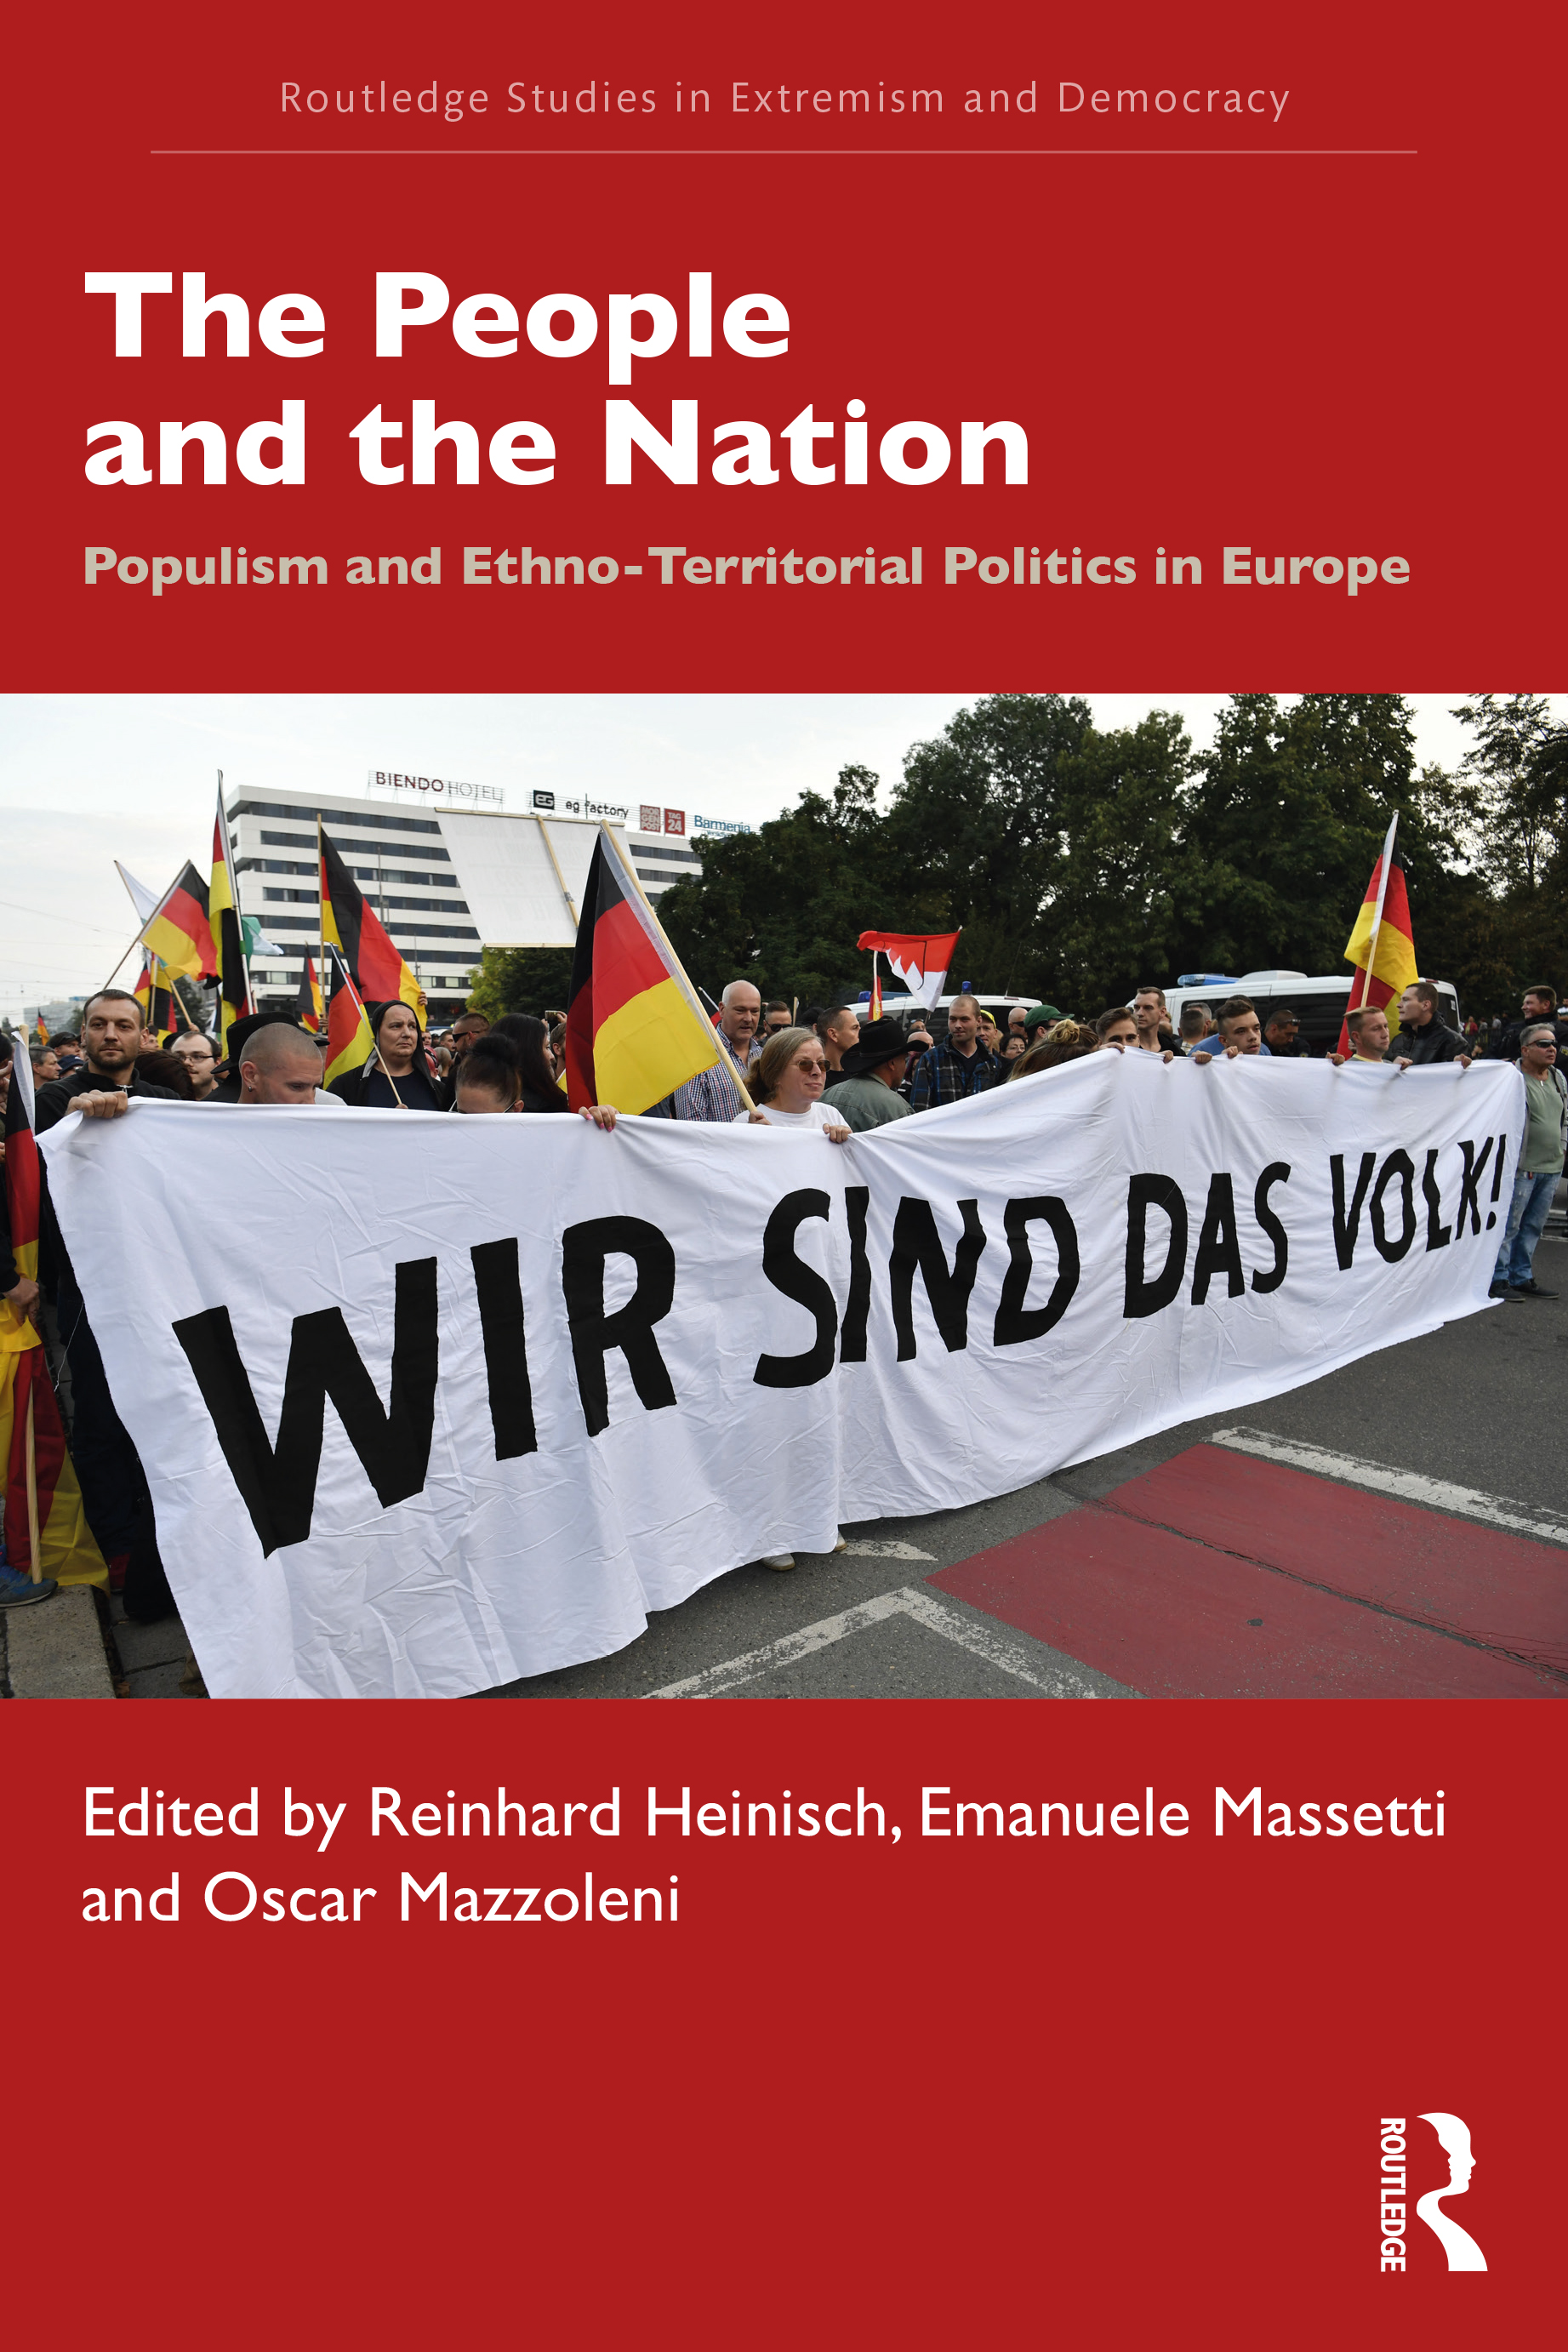 The People and the Nation: Populism and Ethno-Territorial Politics in Europe book cover